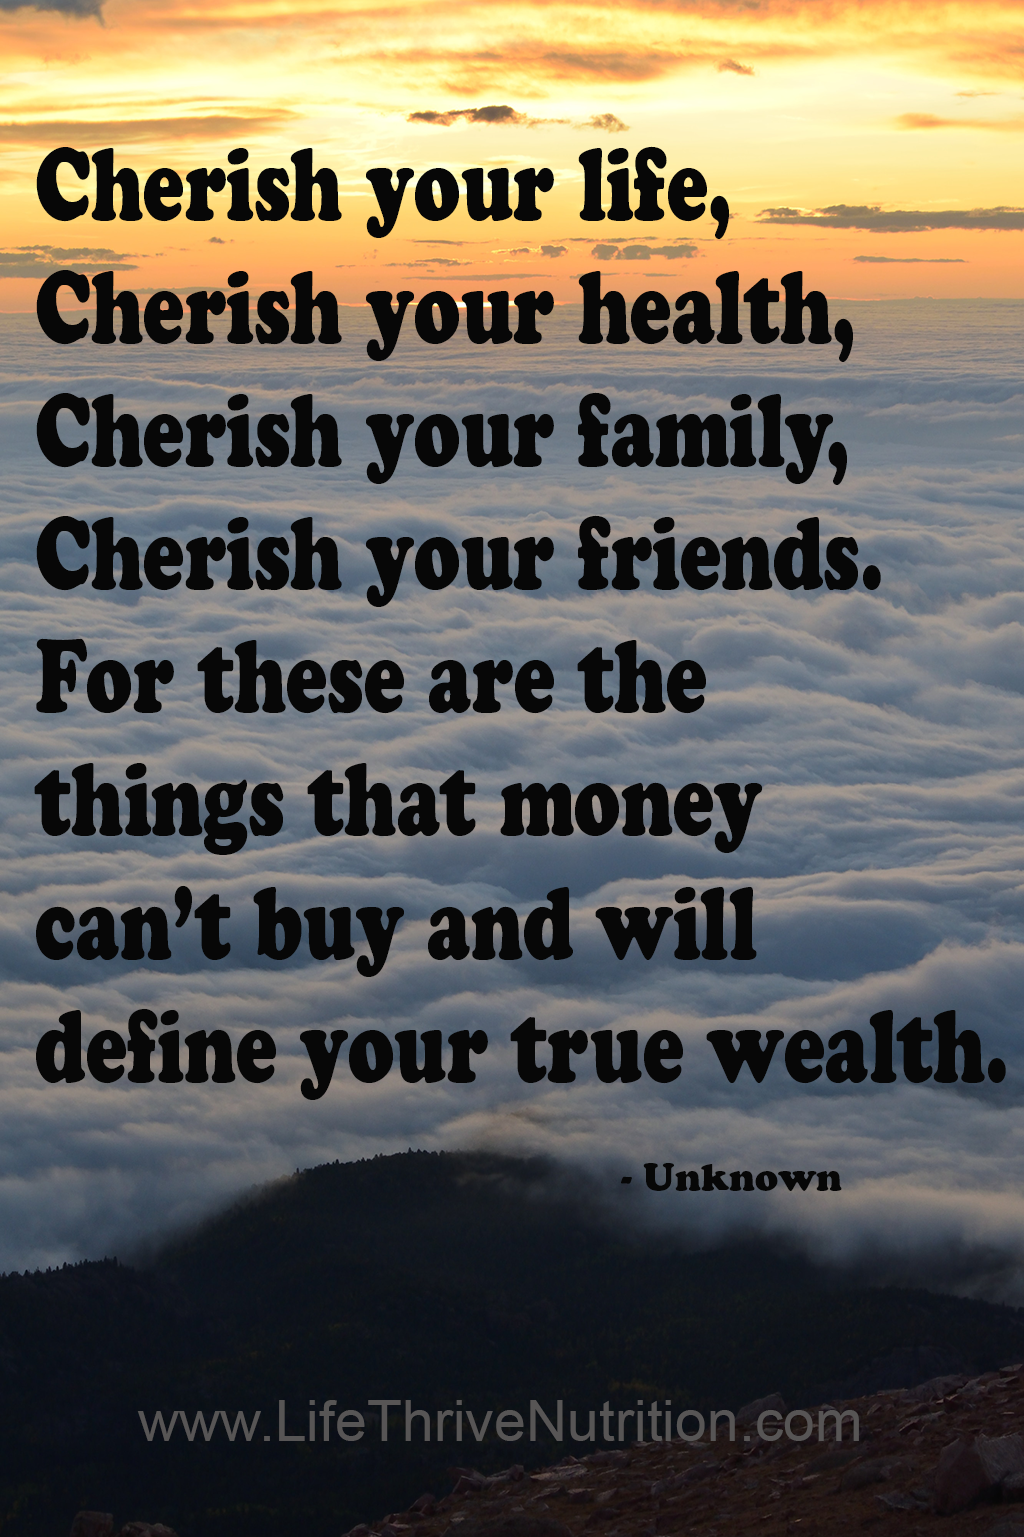 Cherish Your Life Cherish Your Health Cherish Your Family Cherish Your Friends For These A Cherish Life Quotes Life Quotes Family Friends Are Family Quotes